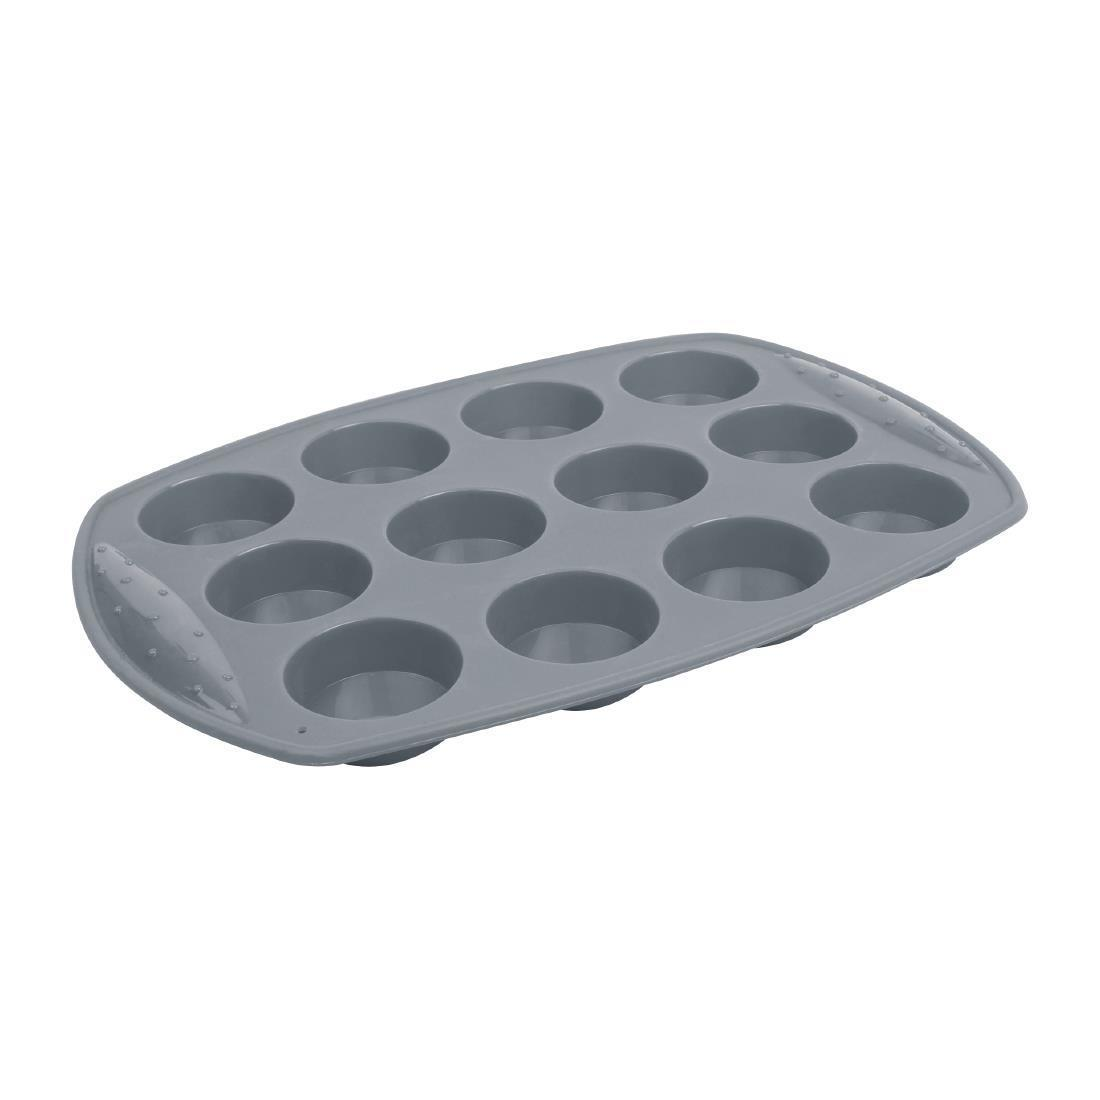 Vogue Flexible Silicone Cupcake Pan 12 Cup - Each - DA522